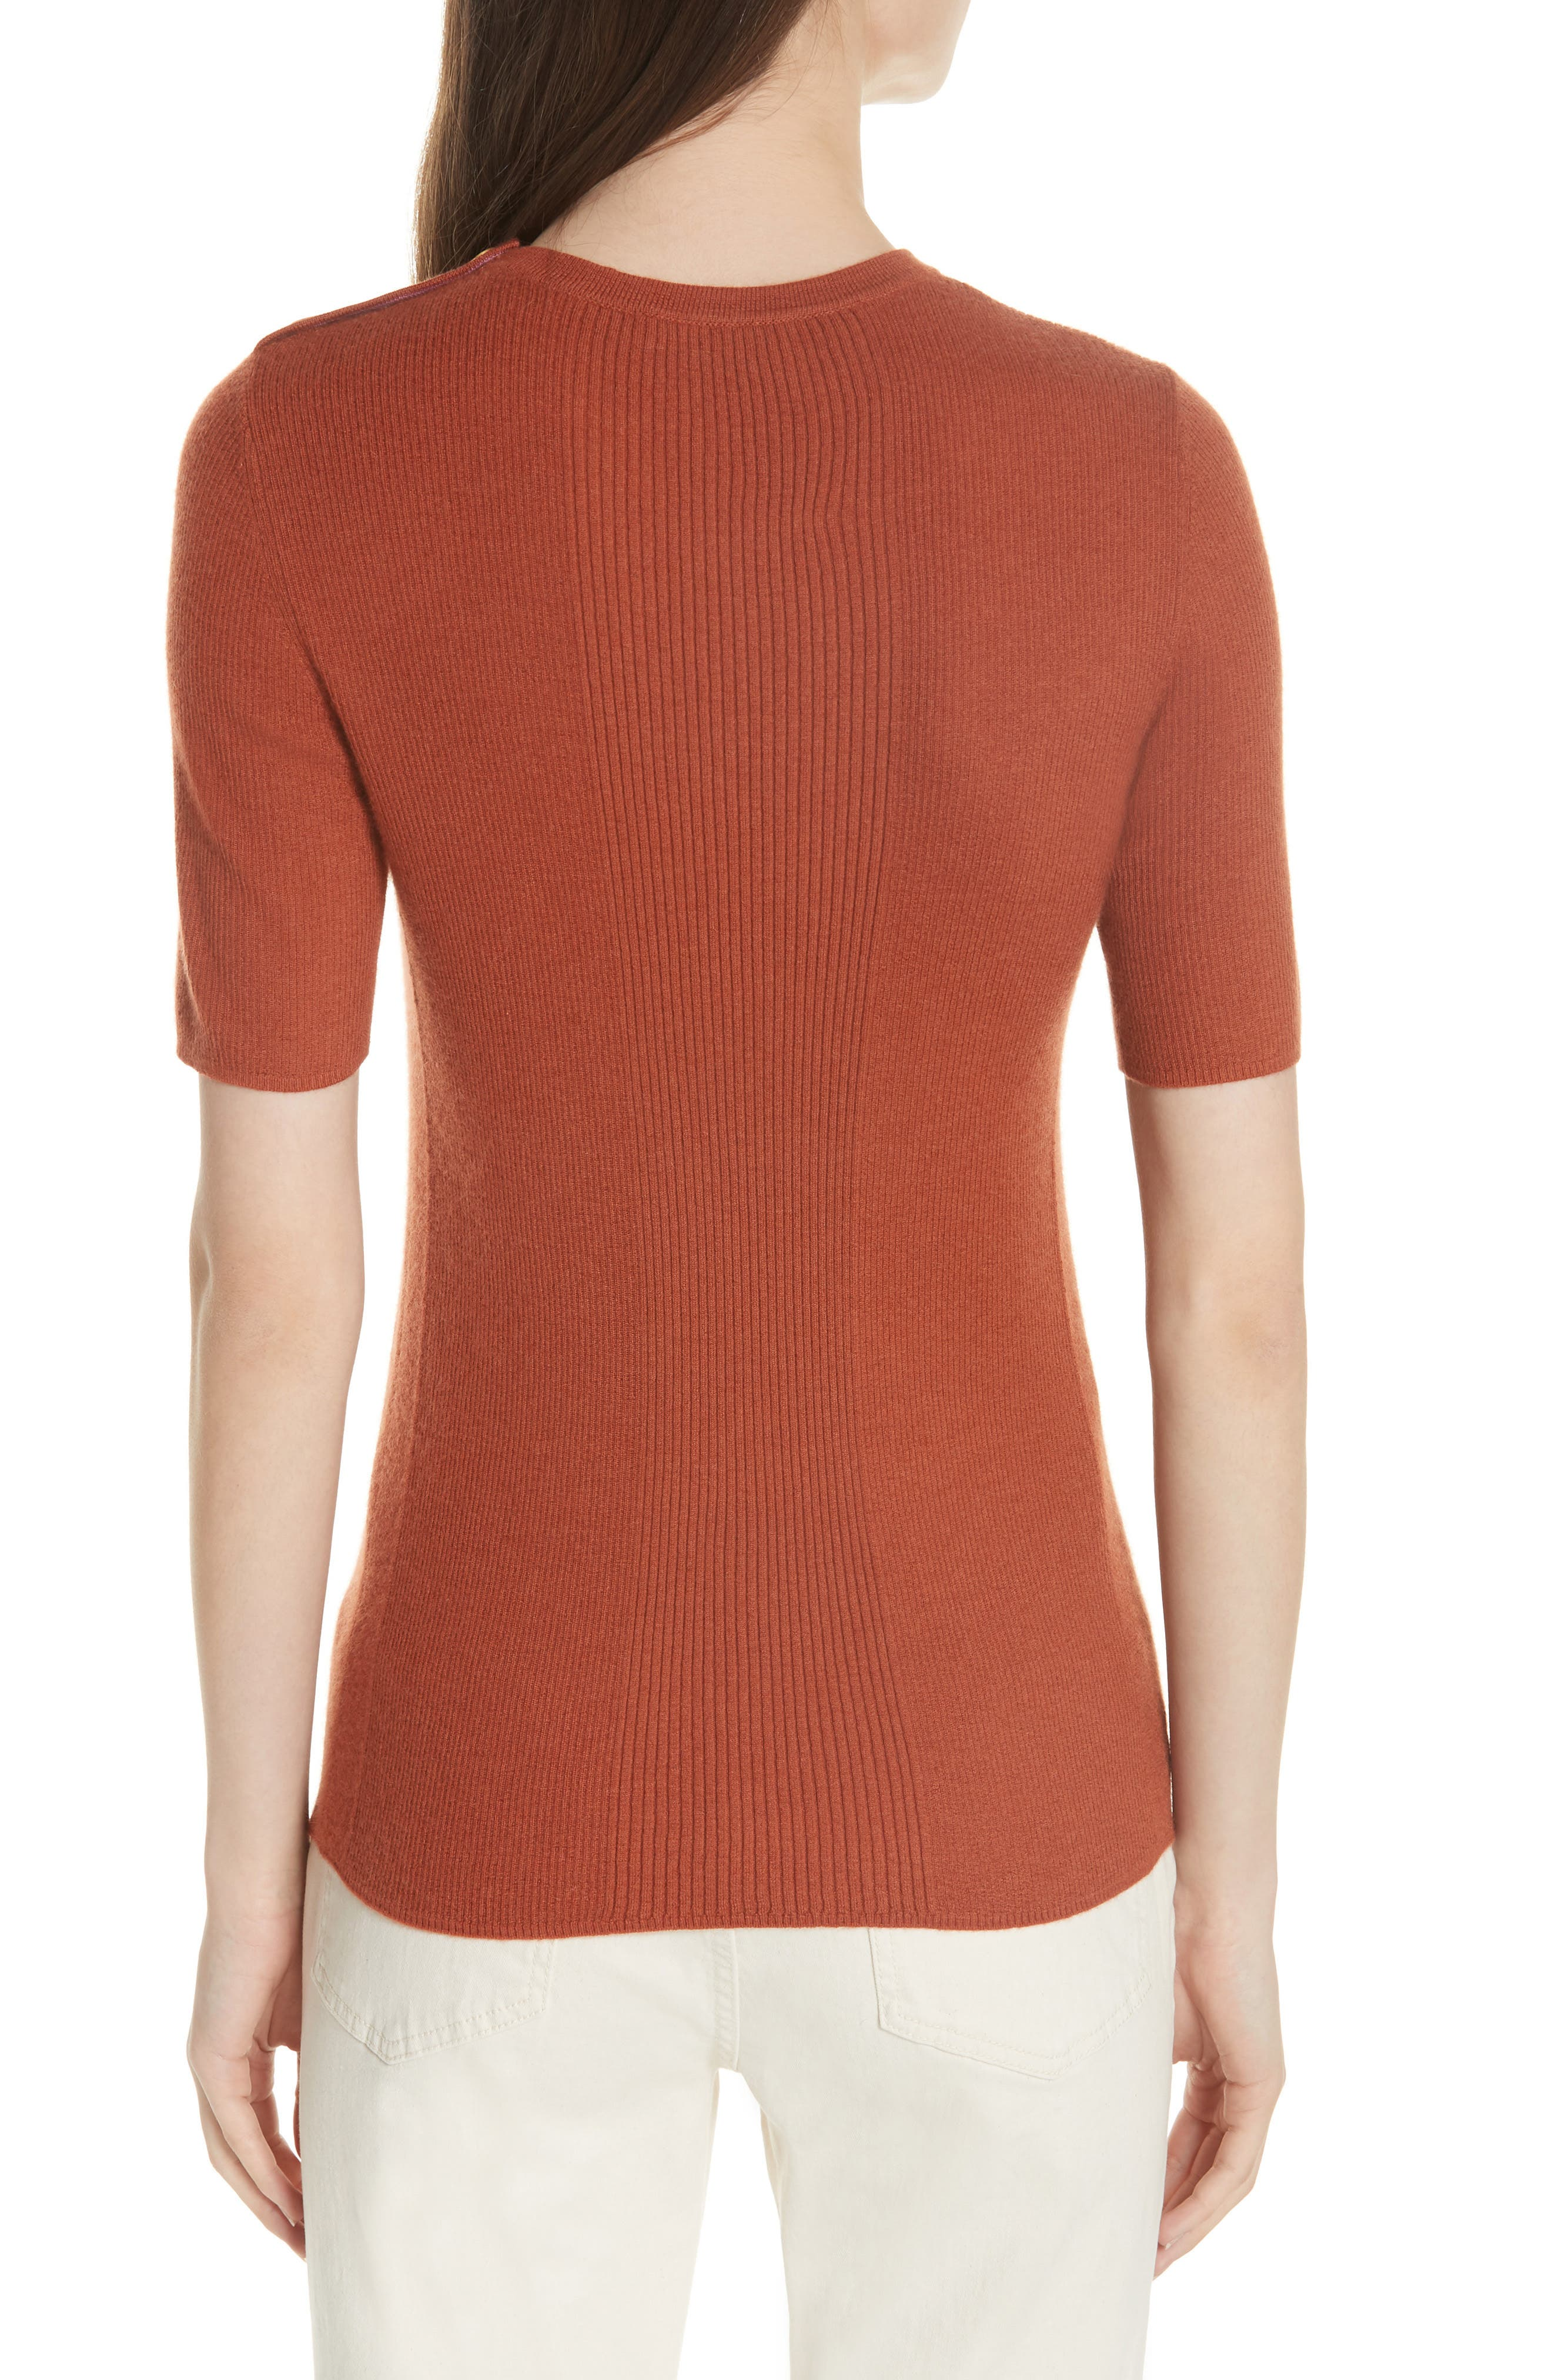 Taylor Ribbed Cashmere Sweater,                             Alternate thumbnail 2, color,                             217